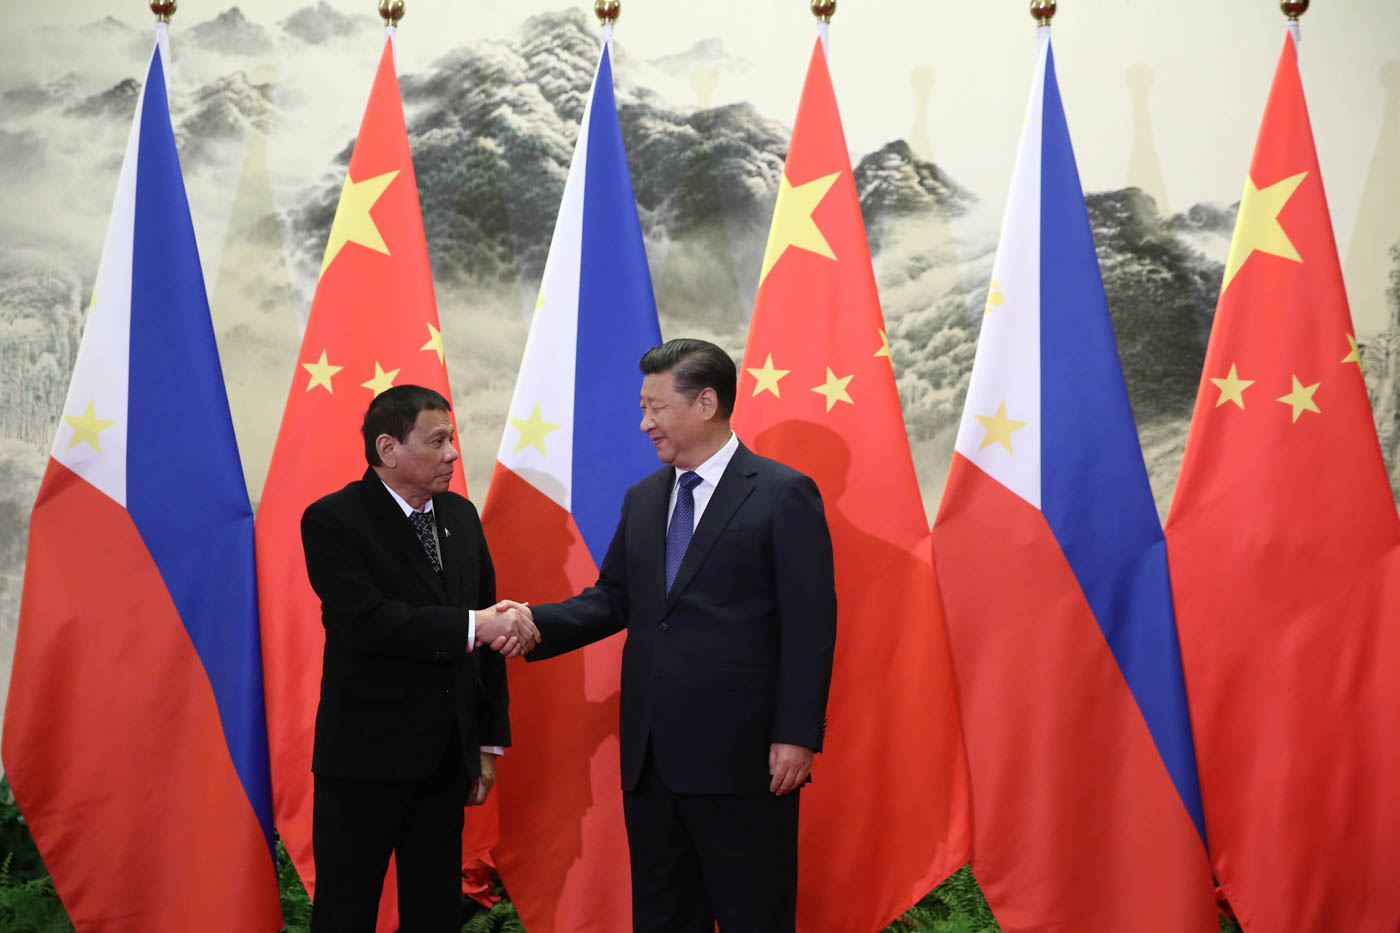 primiano-china-and-philippines-under-duterte